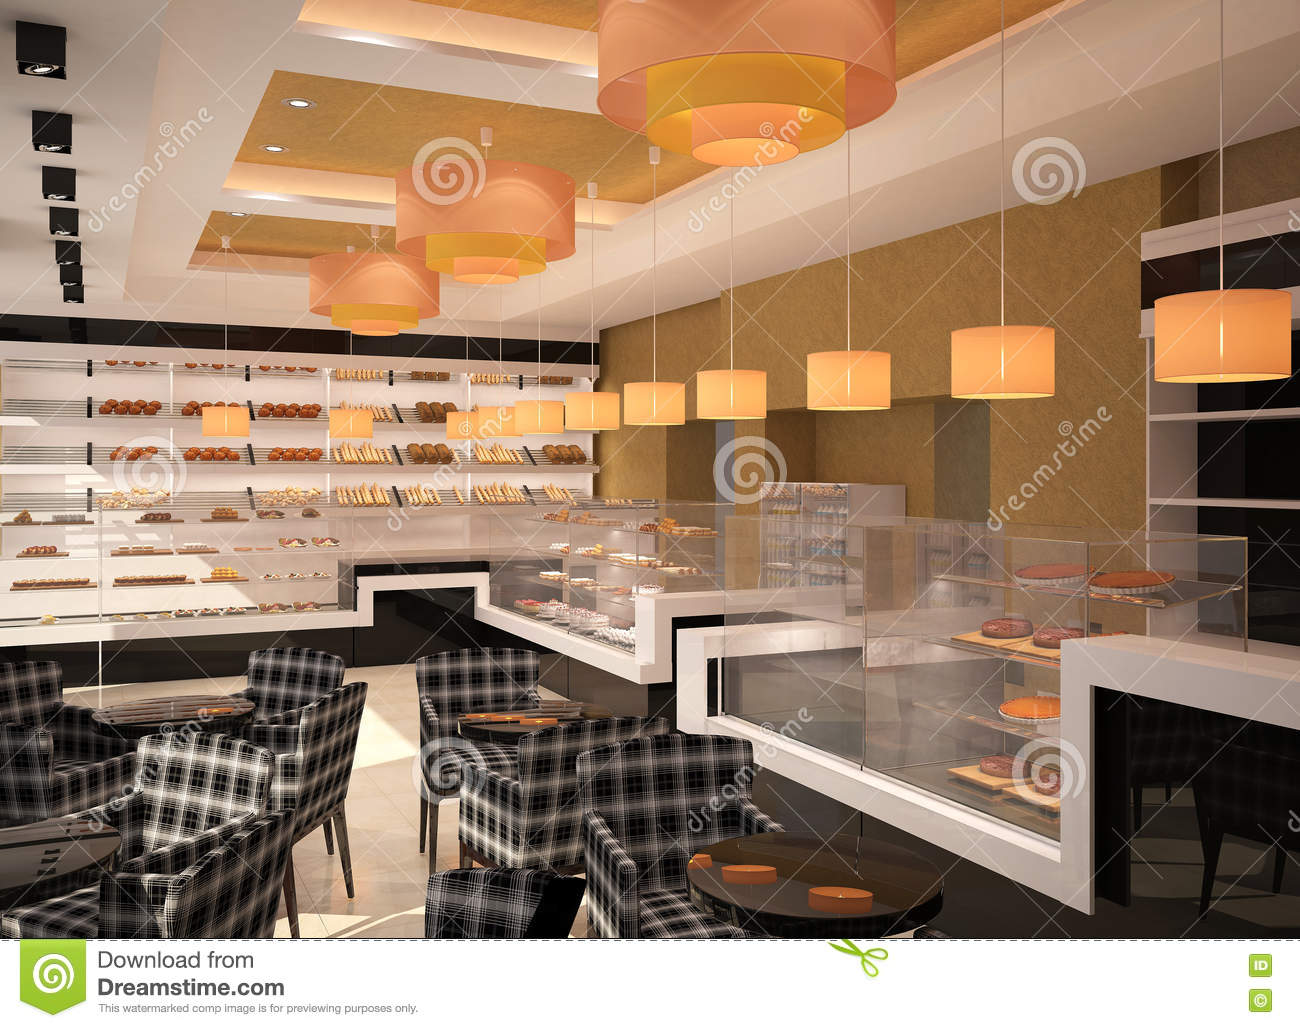 3d Visualization Of A Bakery Interior Design Stock Illustration Illustration Of Tables Room